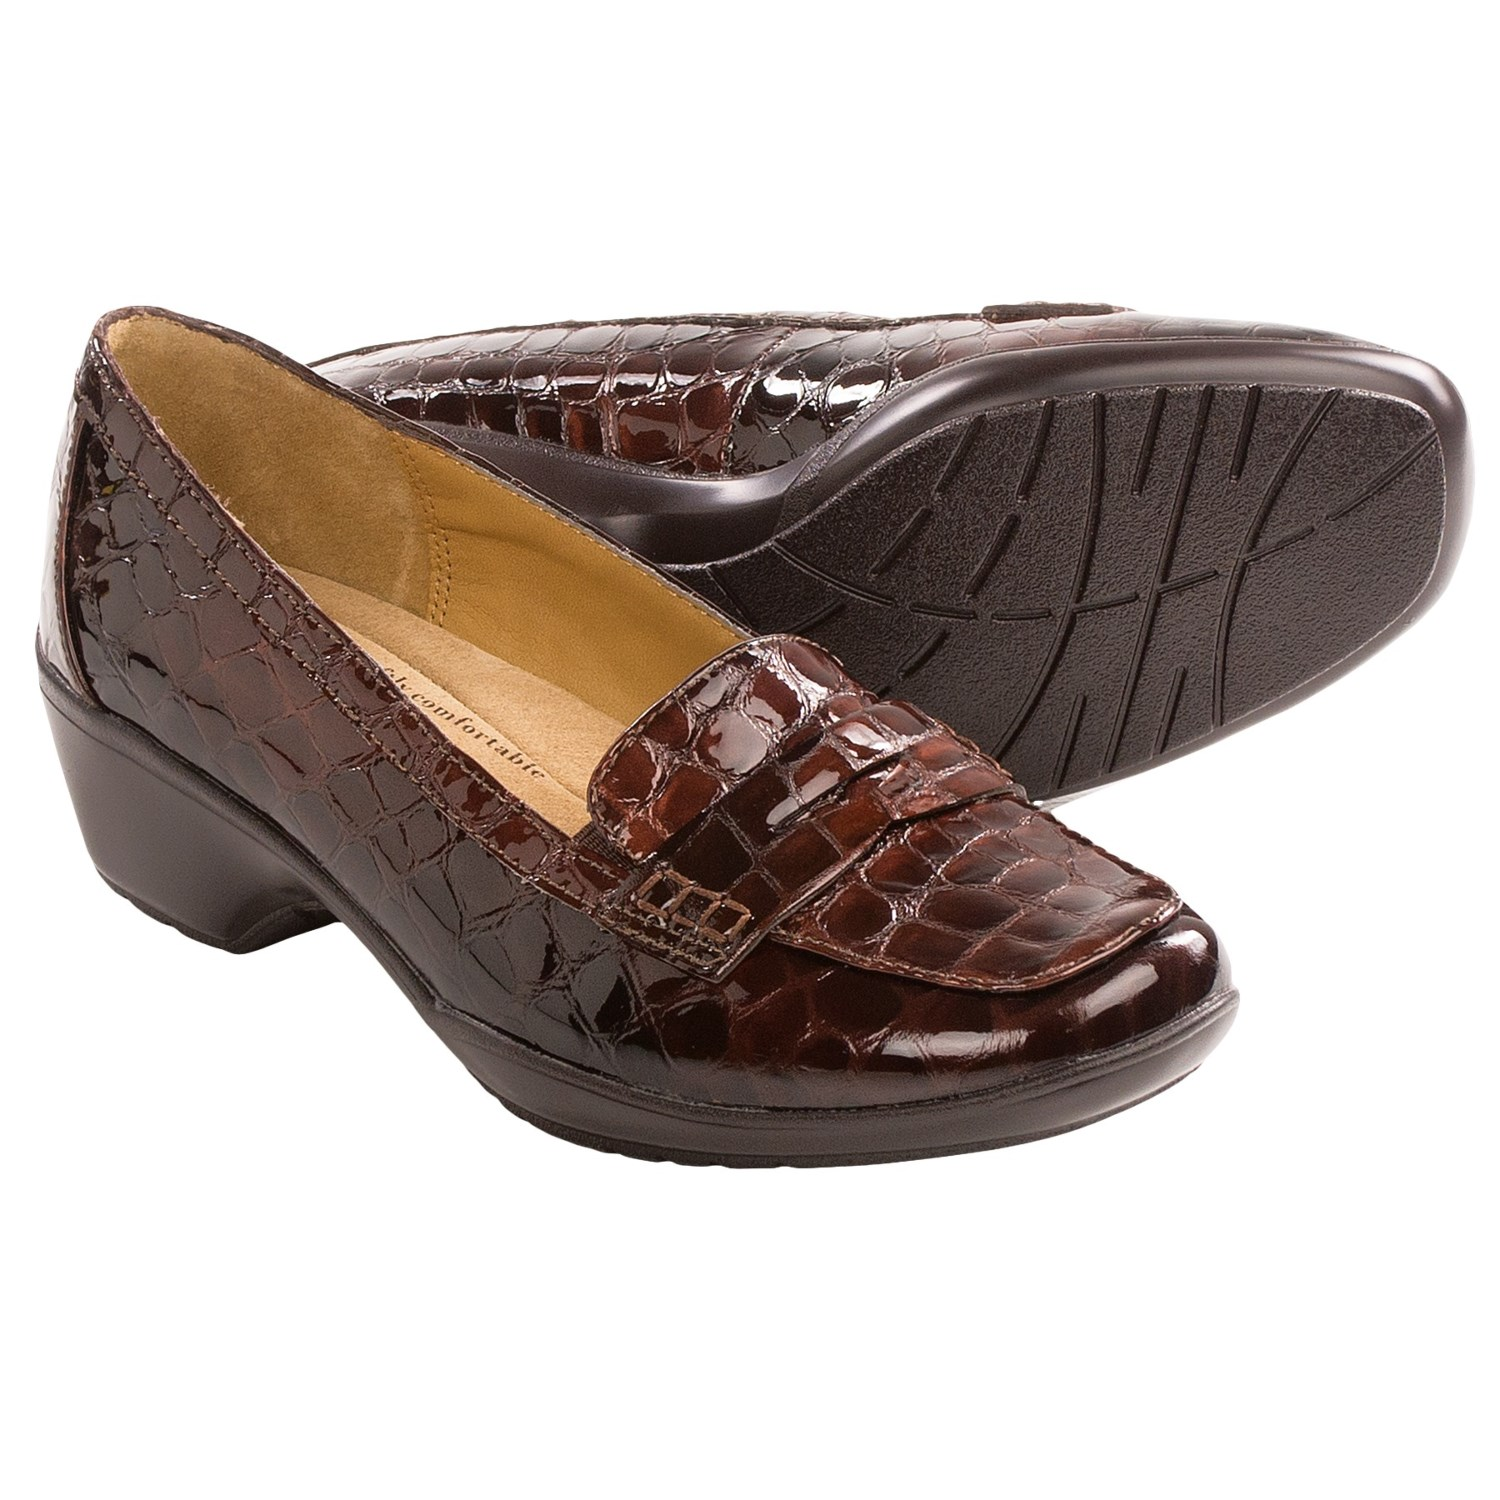 Softspots Maven Penny Loafer Shoes (For Women) in Dark Brown Croco